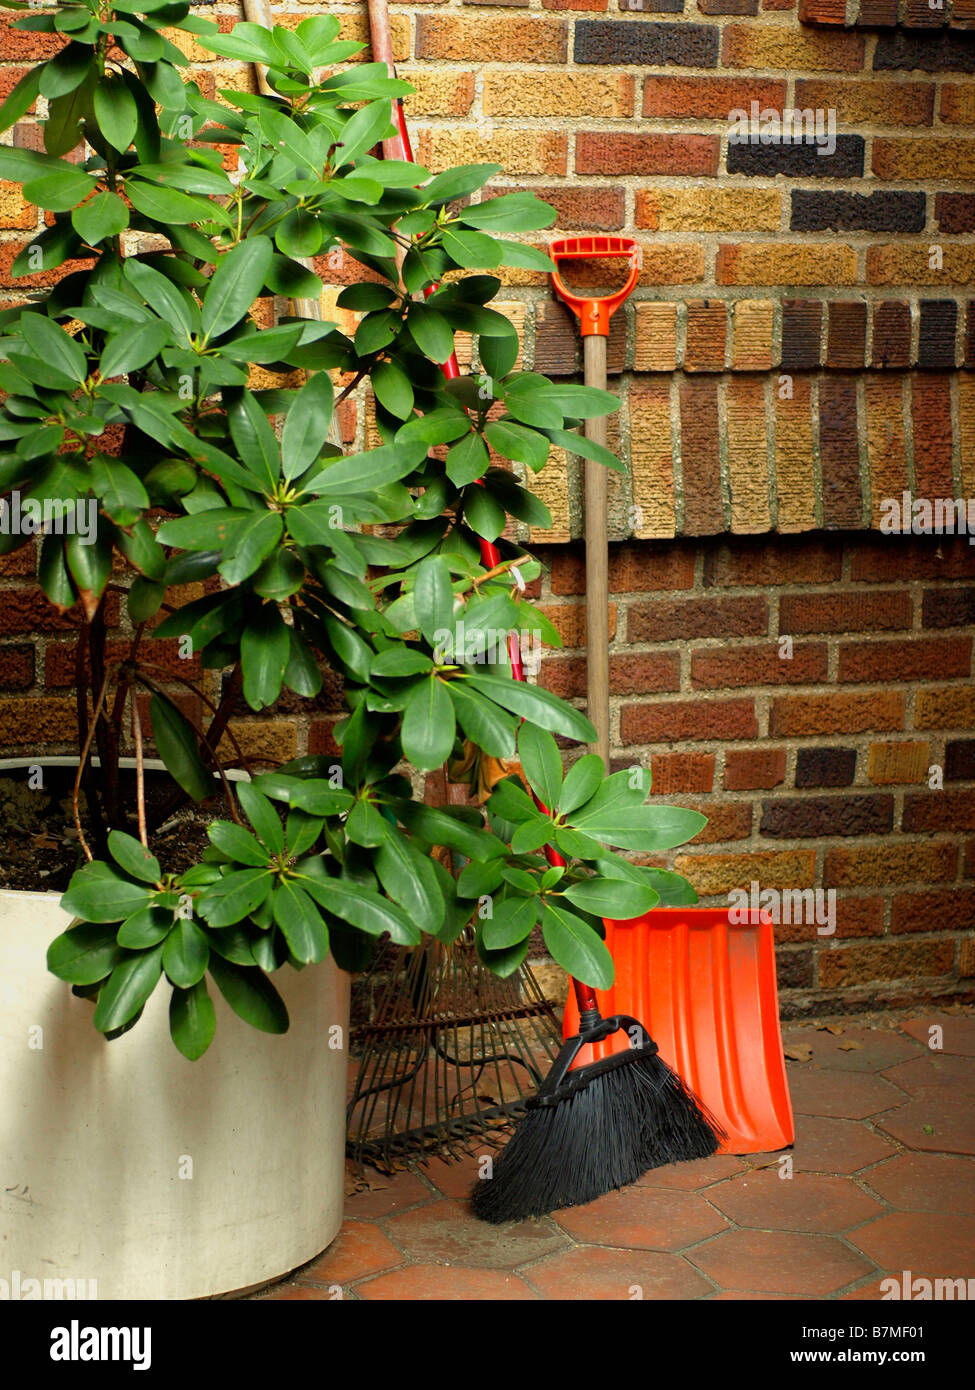 Outdoor tools and gardening implements against a brick wall next to a potted bush or plant. - Stock Image